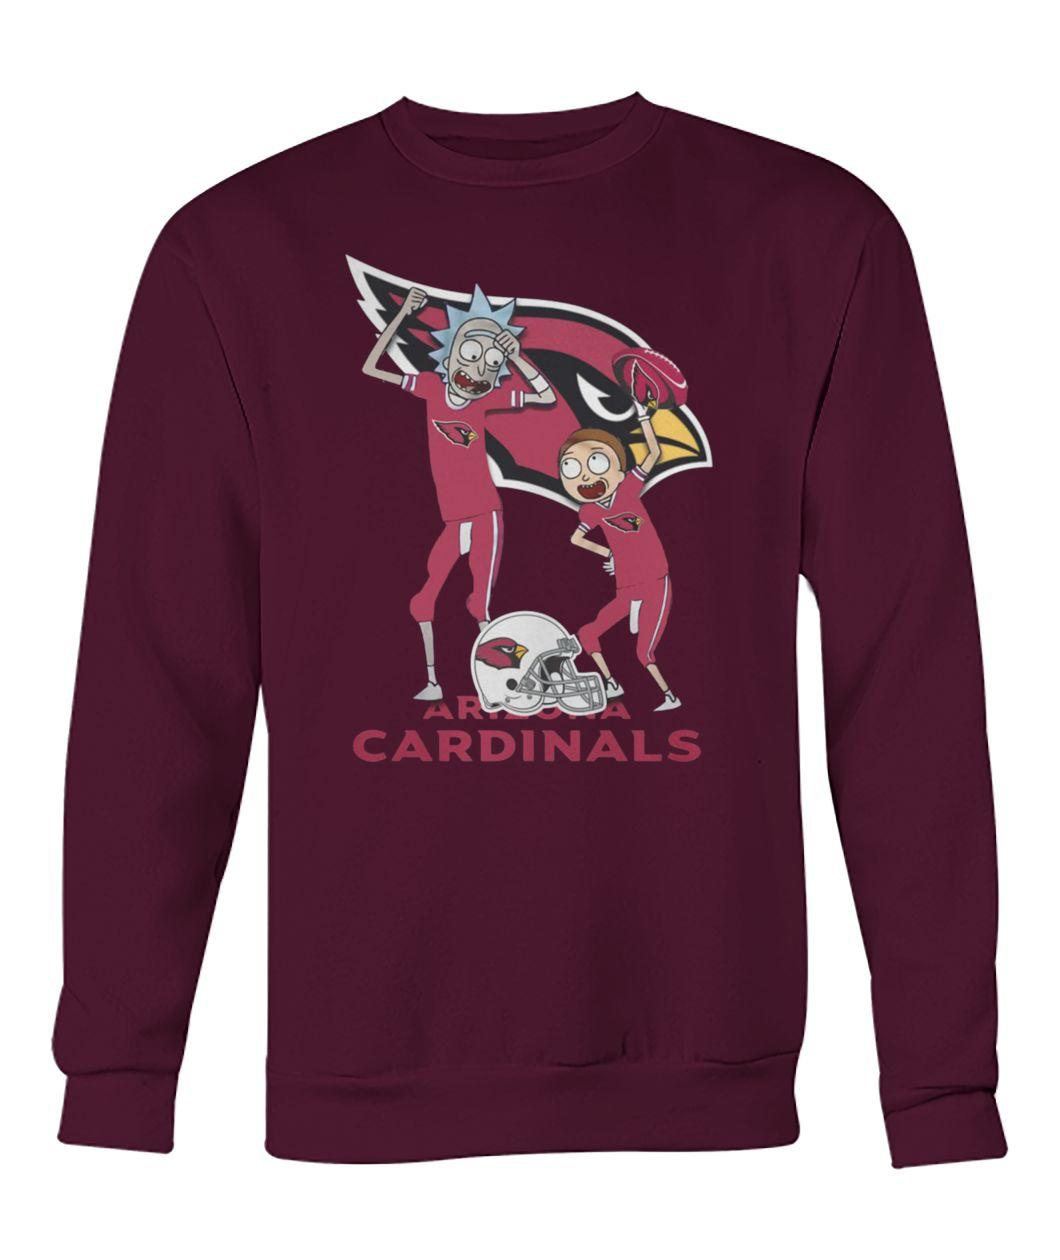 Rick and morty arizona cardinals sweatshirt